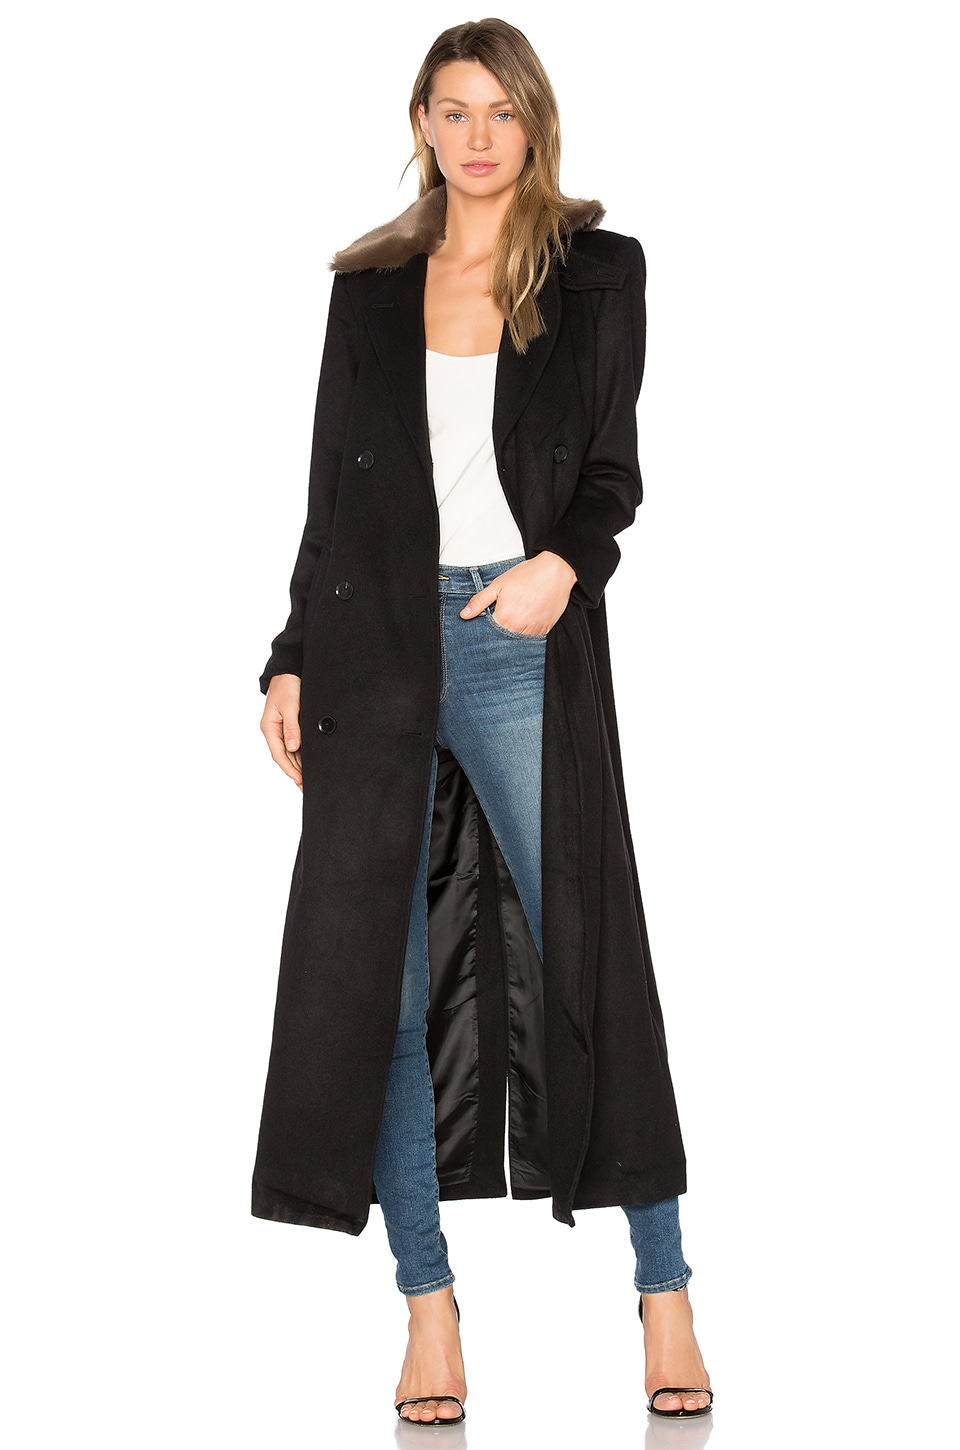 Capulet Vinnie Duster Overcoat with Faux Fur Trim in Black